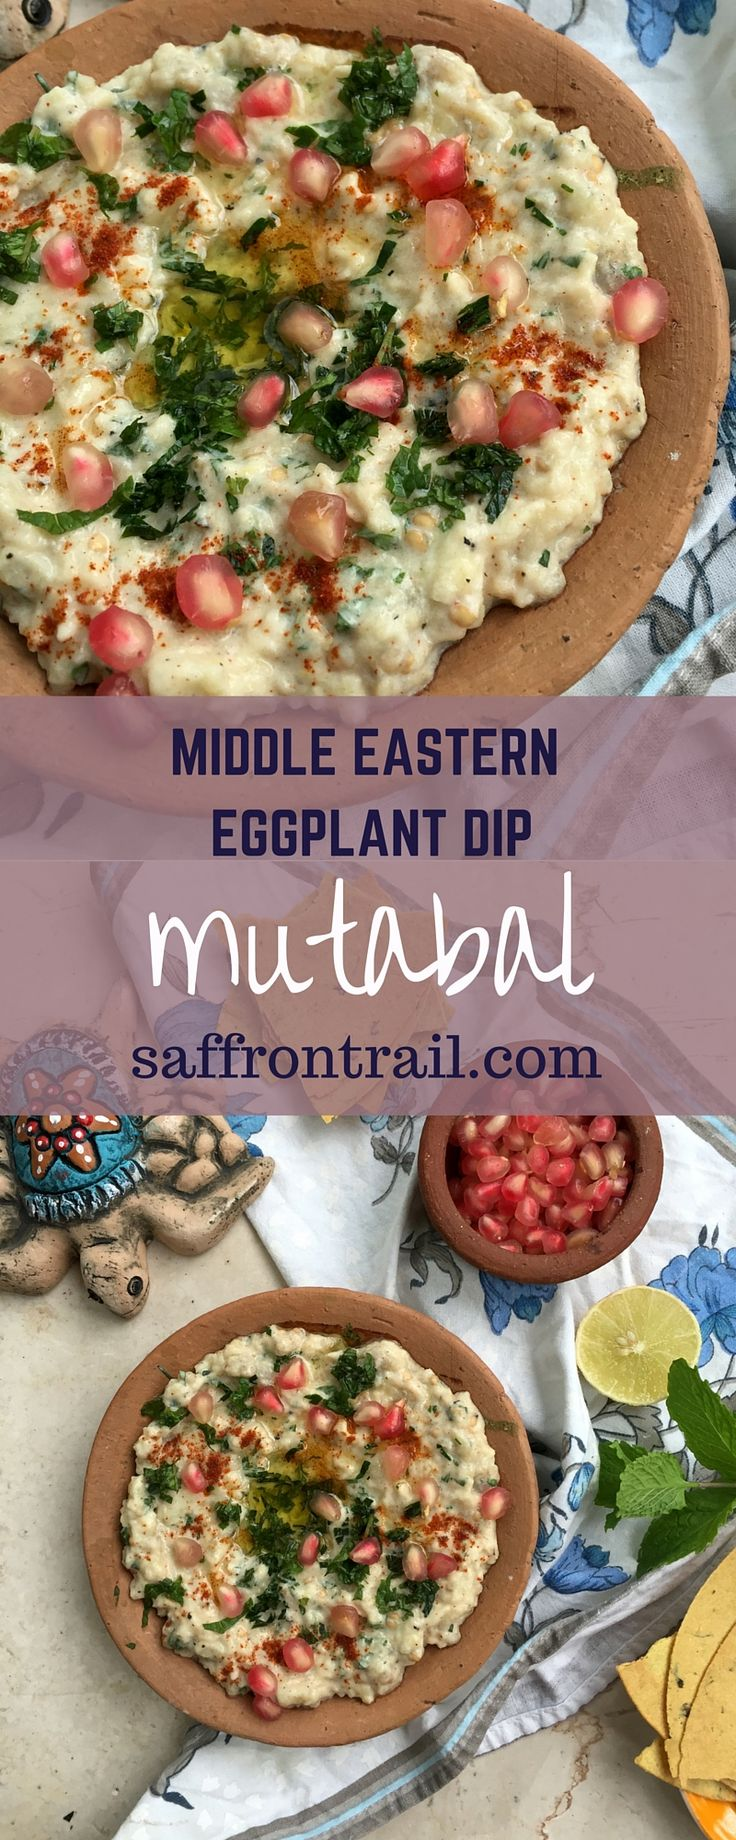 Mutabal - A Middle Eastern Eggplant Dip Recipe for Mutabal / Moutabbal / Moutabel - an eggplant dip which is part of a Mezze platter. A bowl of hummus, another bowl of mutabal, a stack of pita breads or crackers, and you'll feel that life is indeed amazing